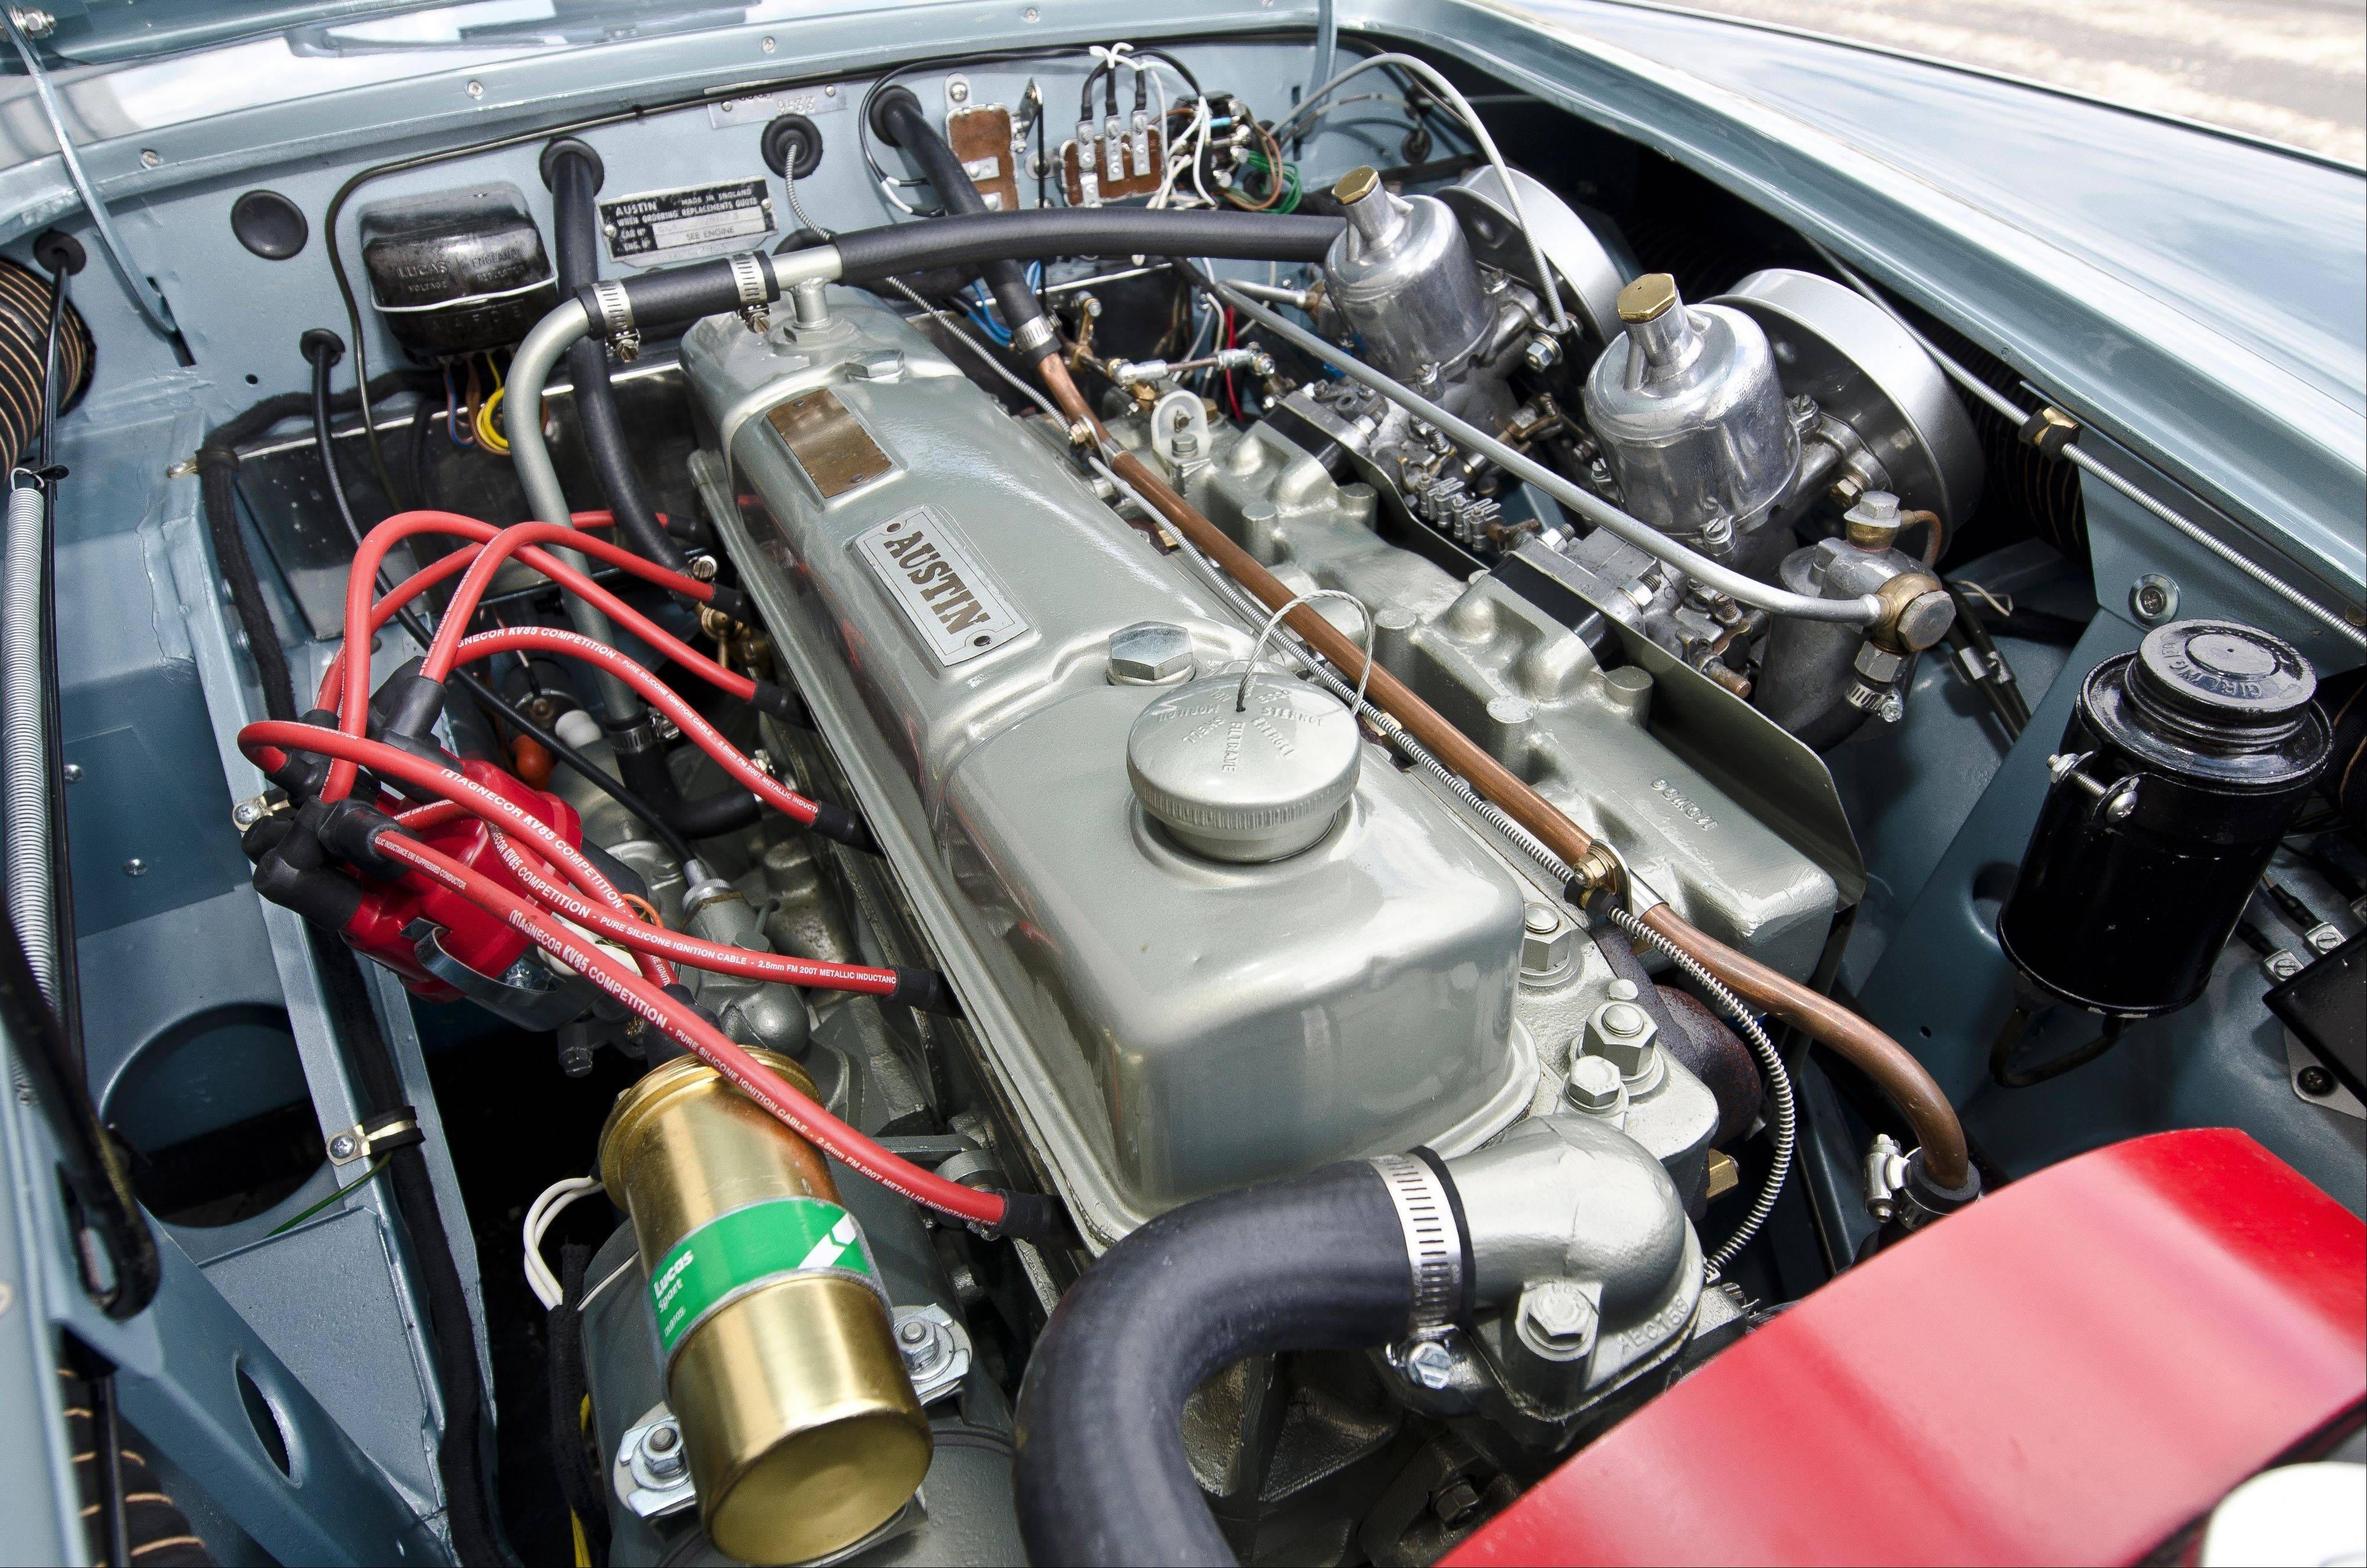 The factory inline 161-cubic-inch, six-cylinder engine is mated to a four-speed manual transmission.